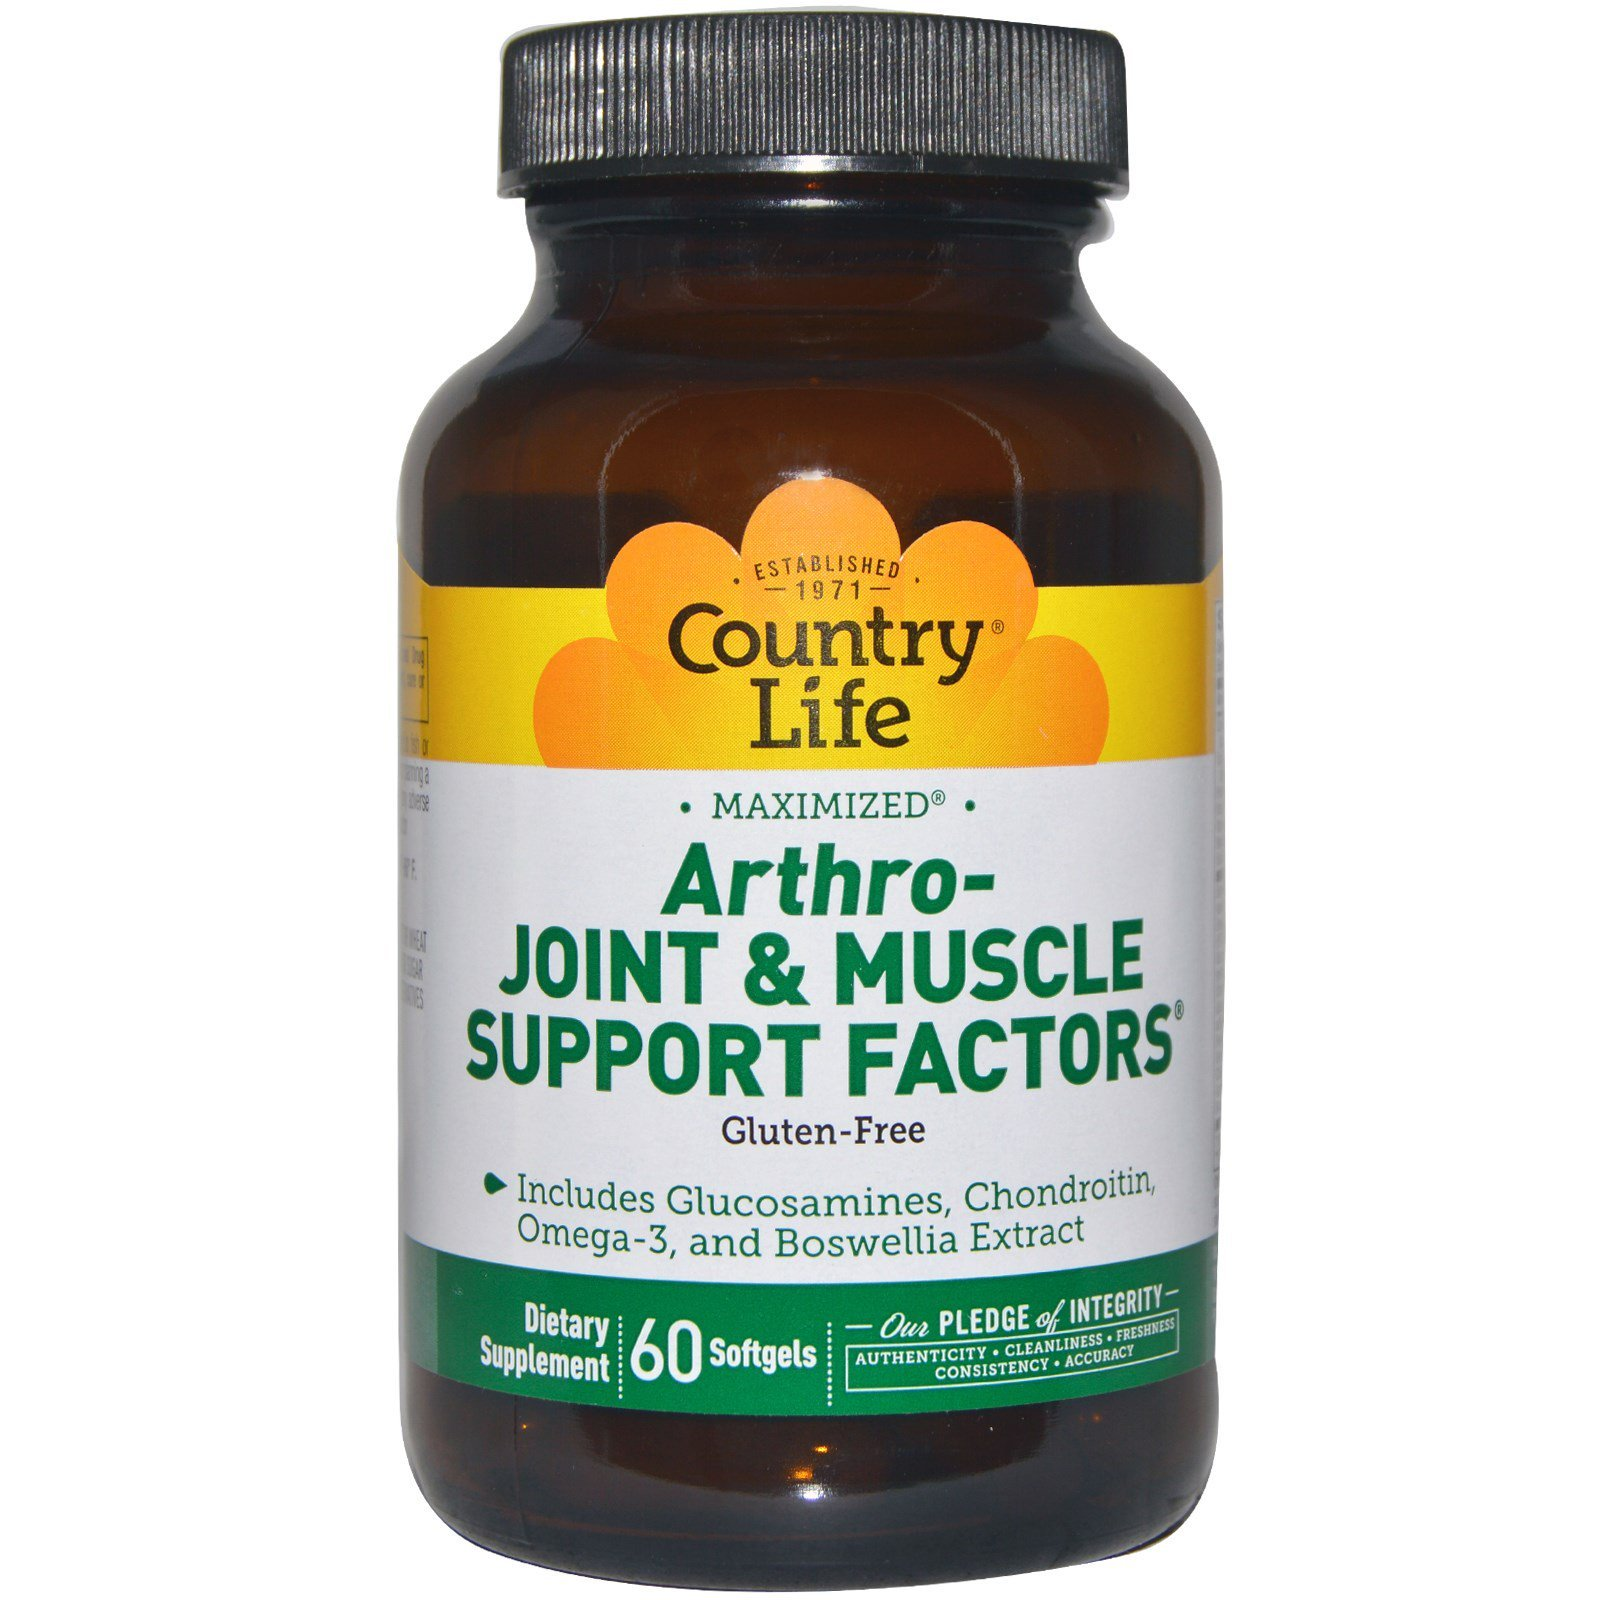 Country Life, Arthro - Joint & Muscle Support Factors, 60 Softgels